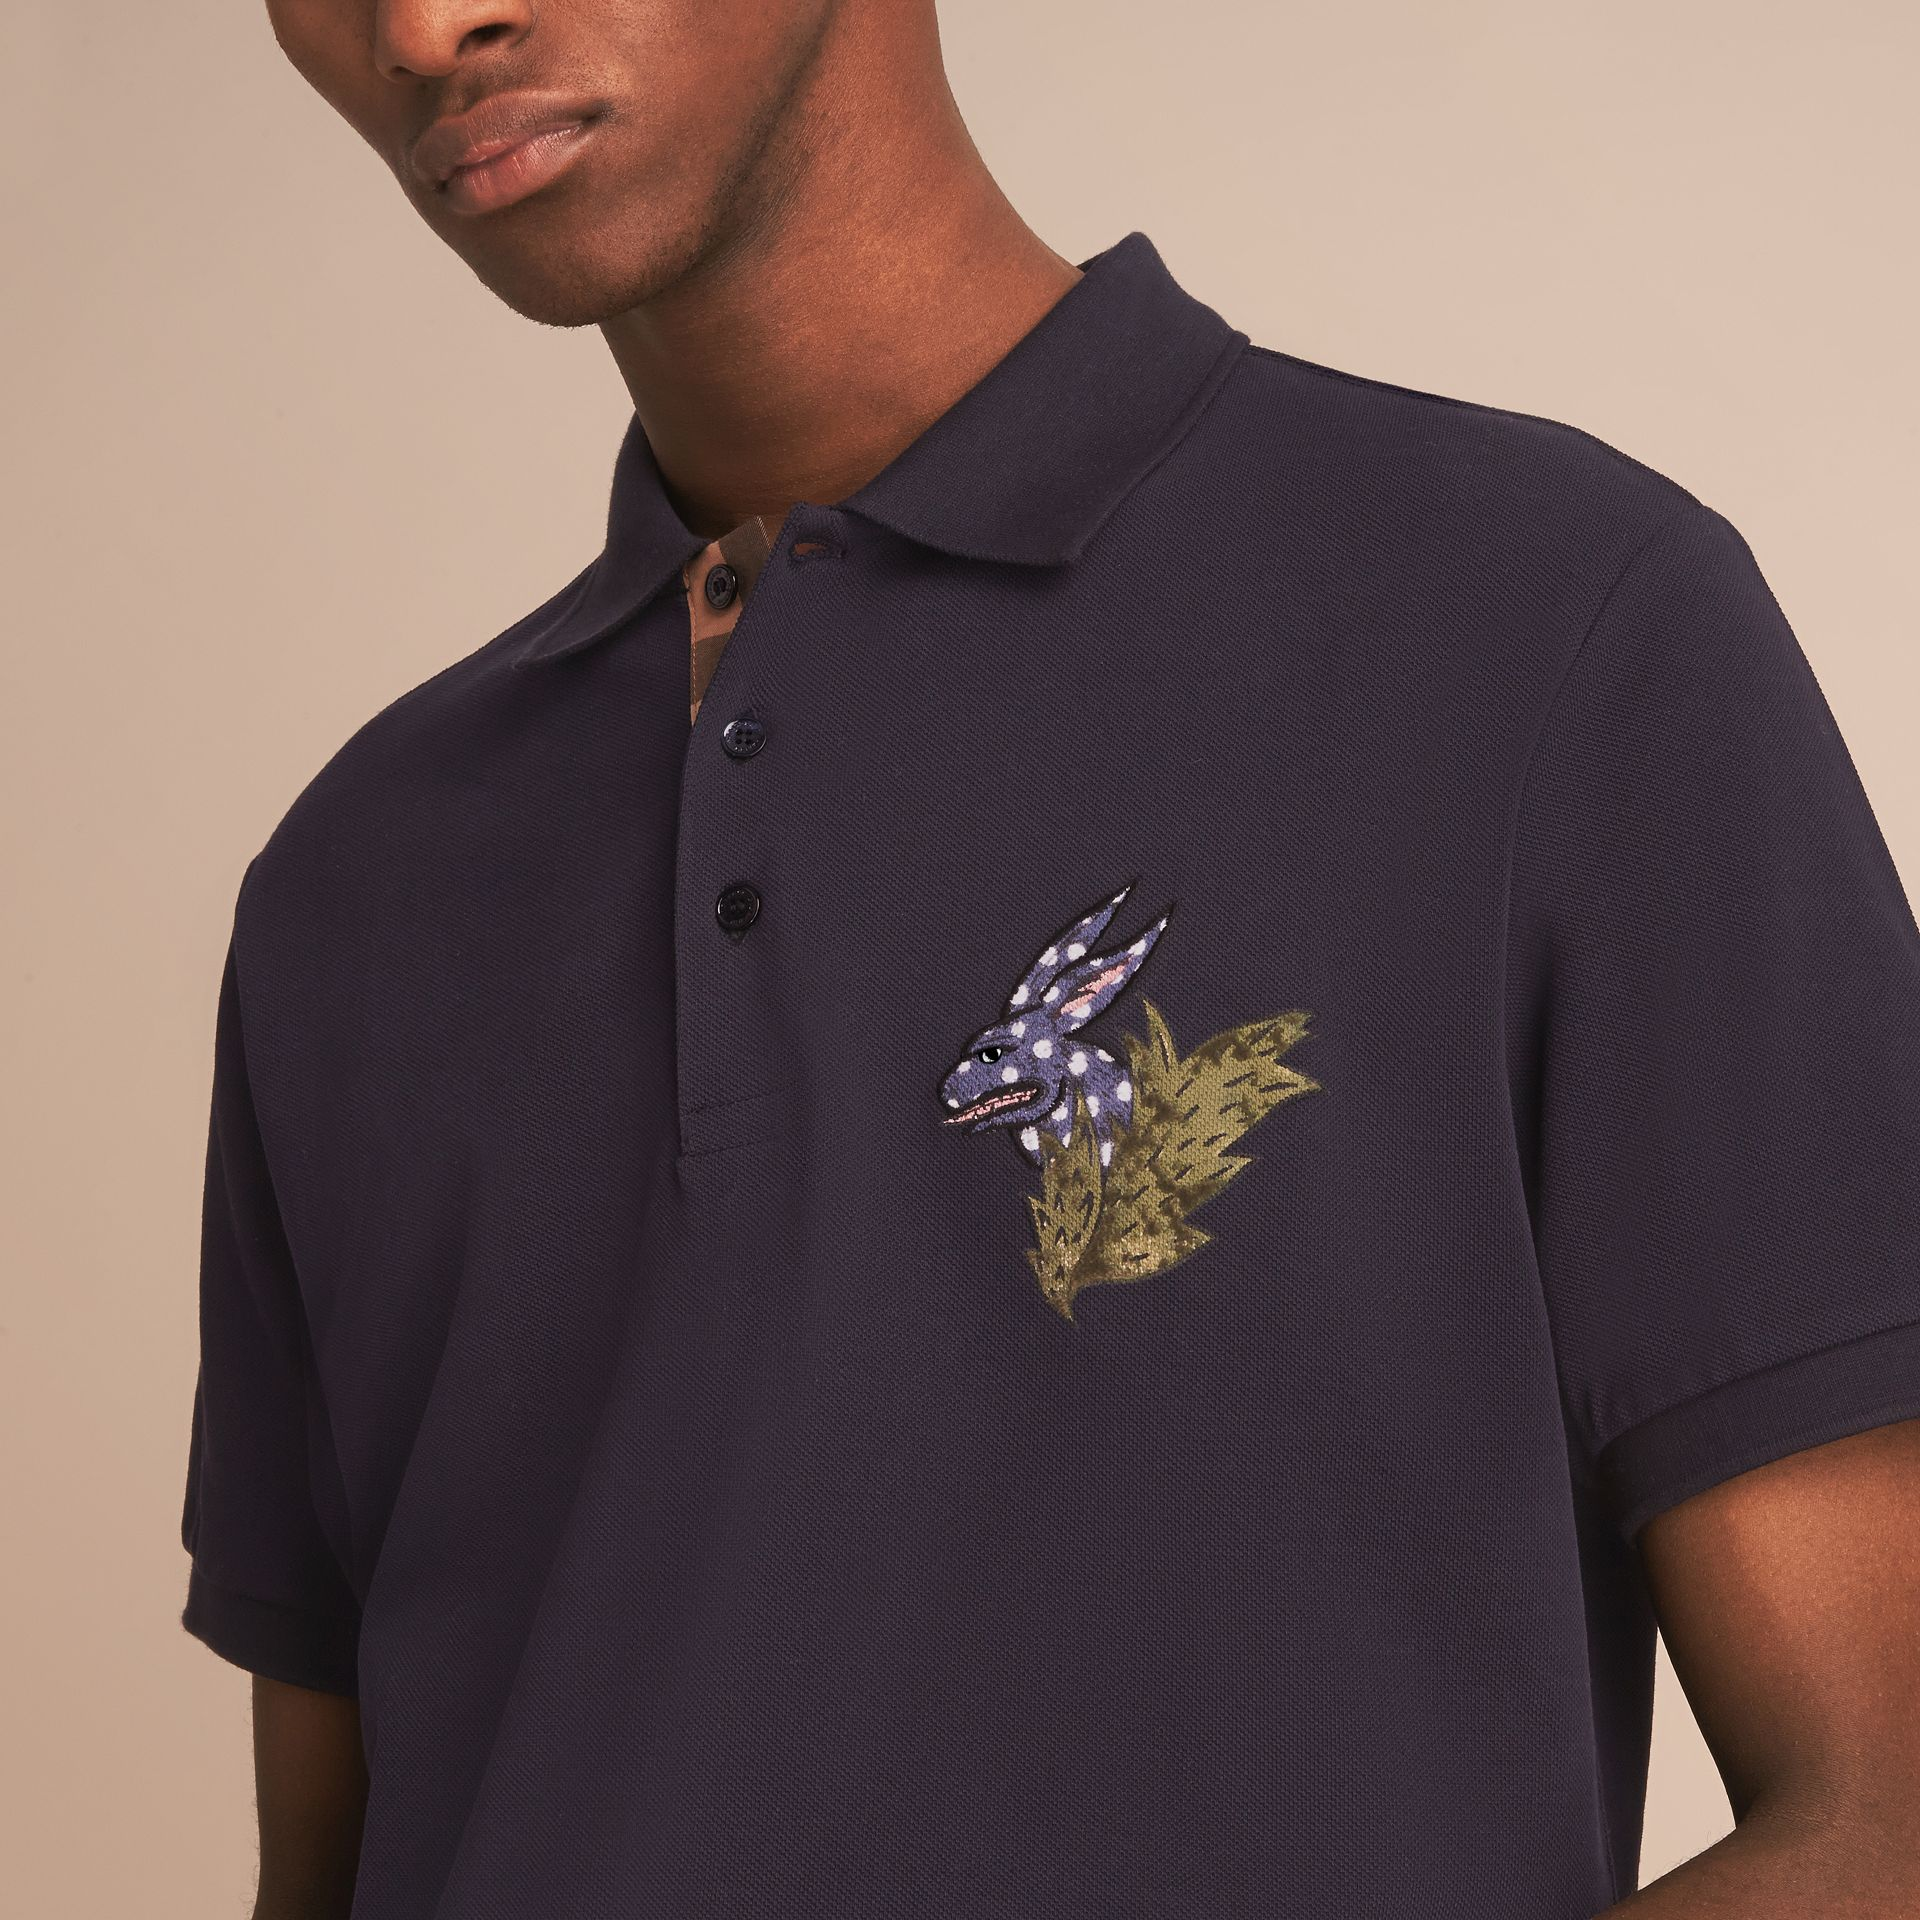 Beasts Motif Cotton Piqué Polo Shirt in Dark Navy - Men | Burberry - gallery image 5